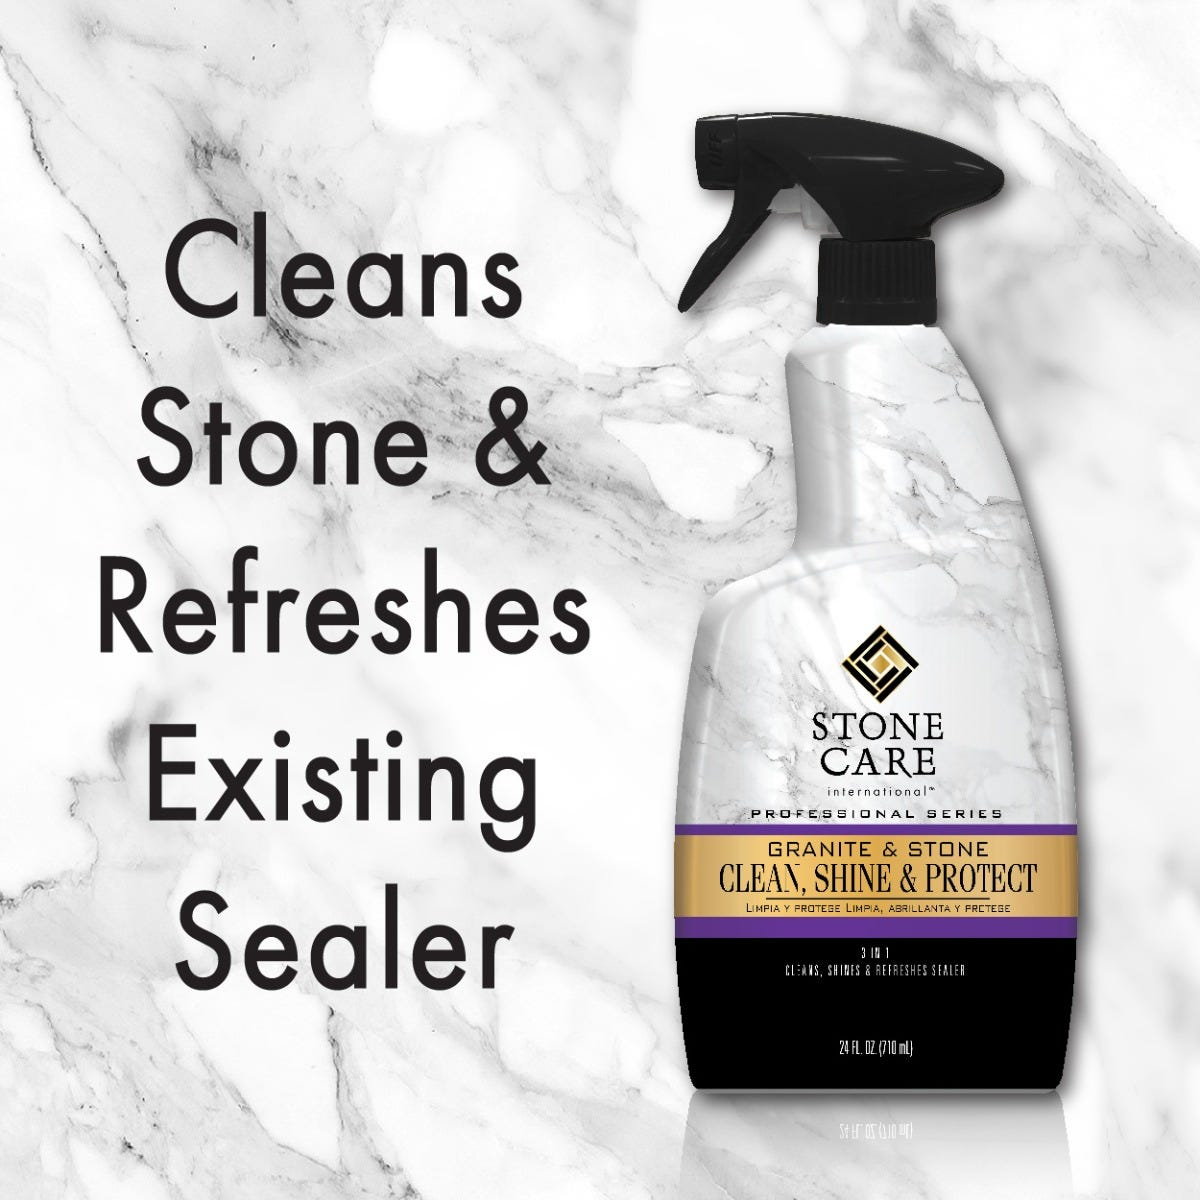 Cleans stone & refreshes existing sealer